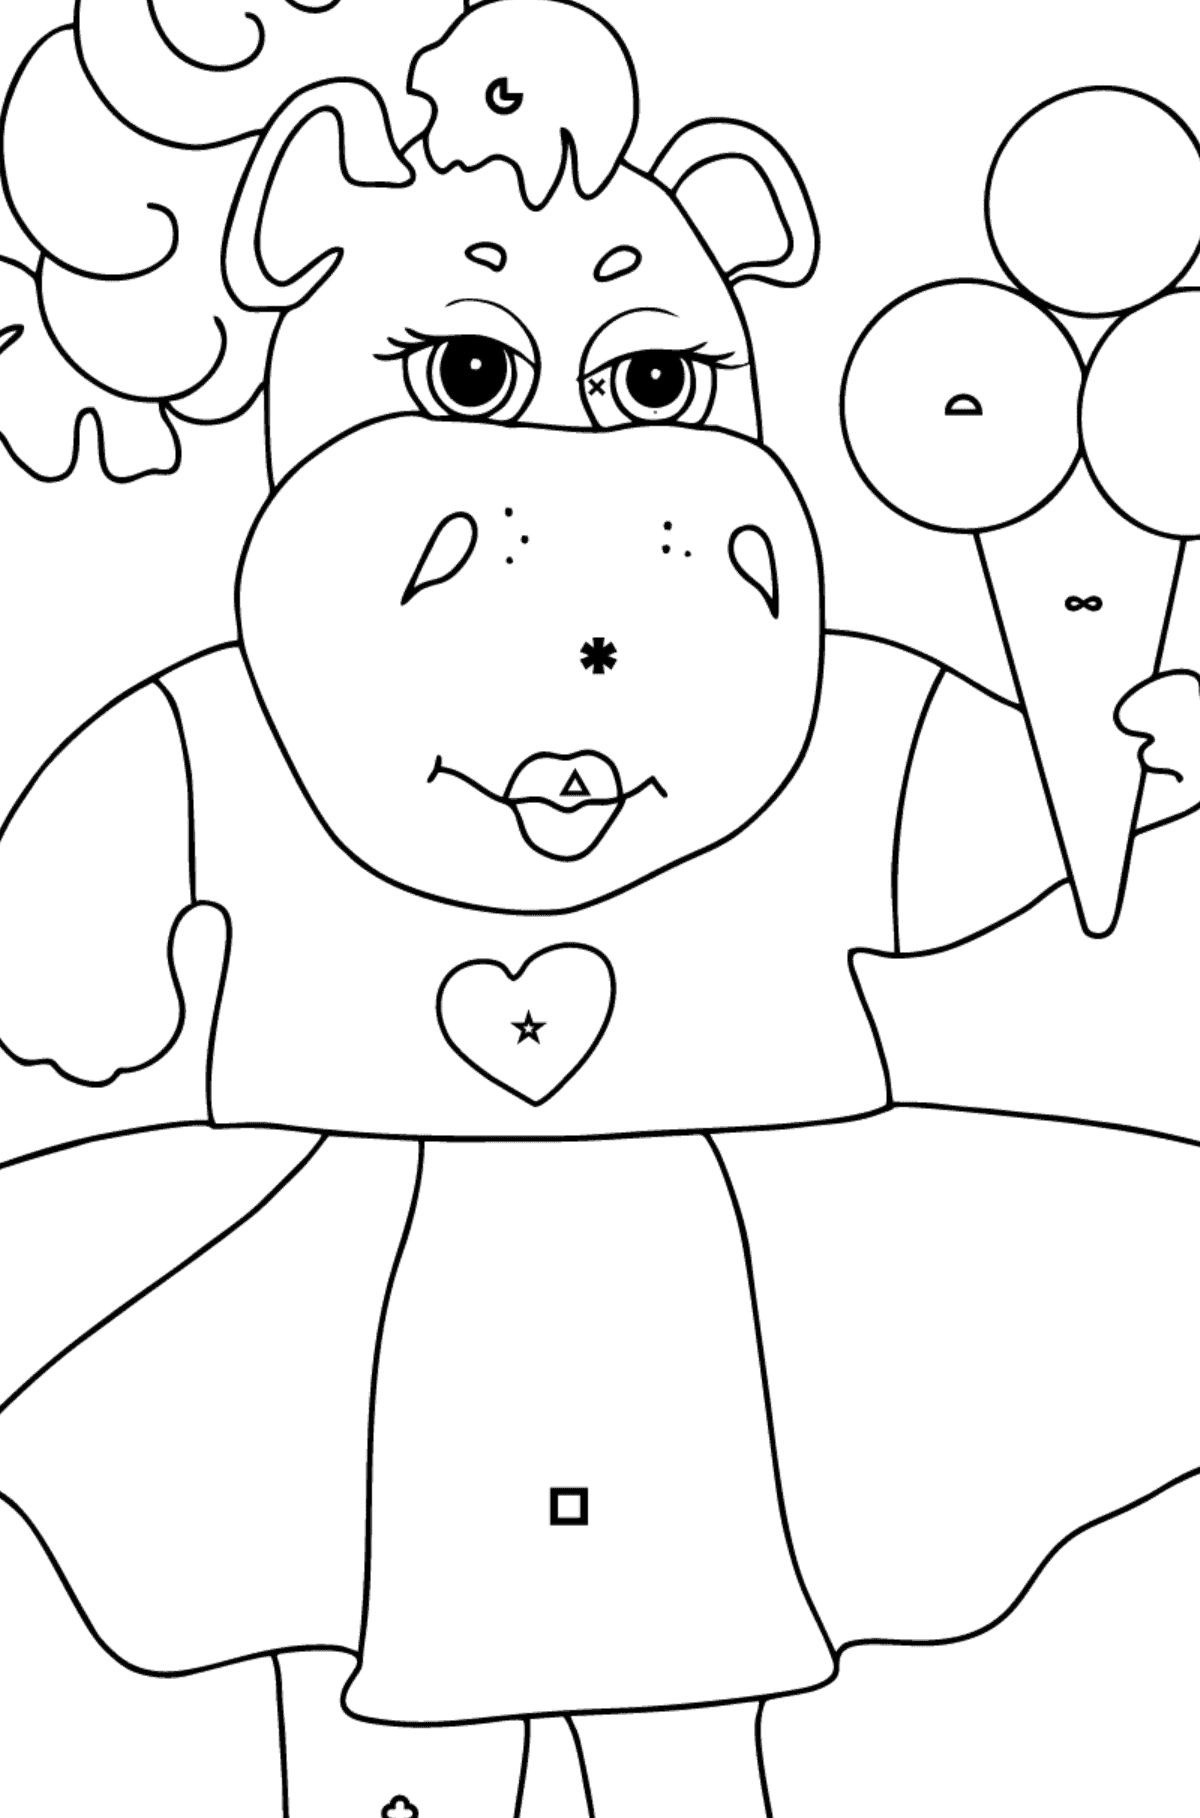 A Hippo in a Fancy Dress is Eating Ice Cream for Kids By Symbols And Geometry